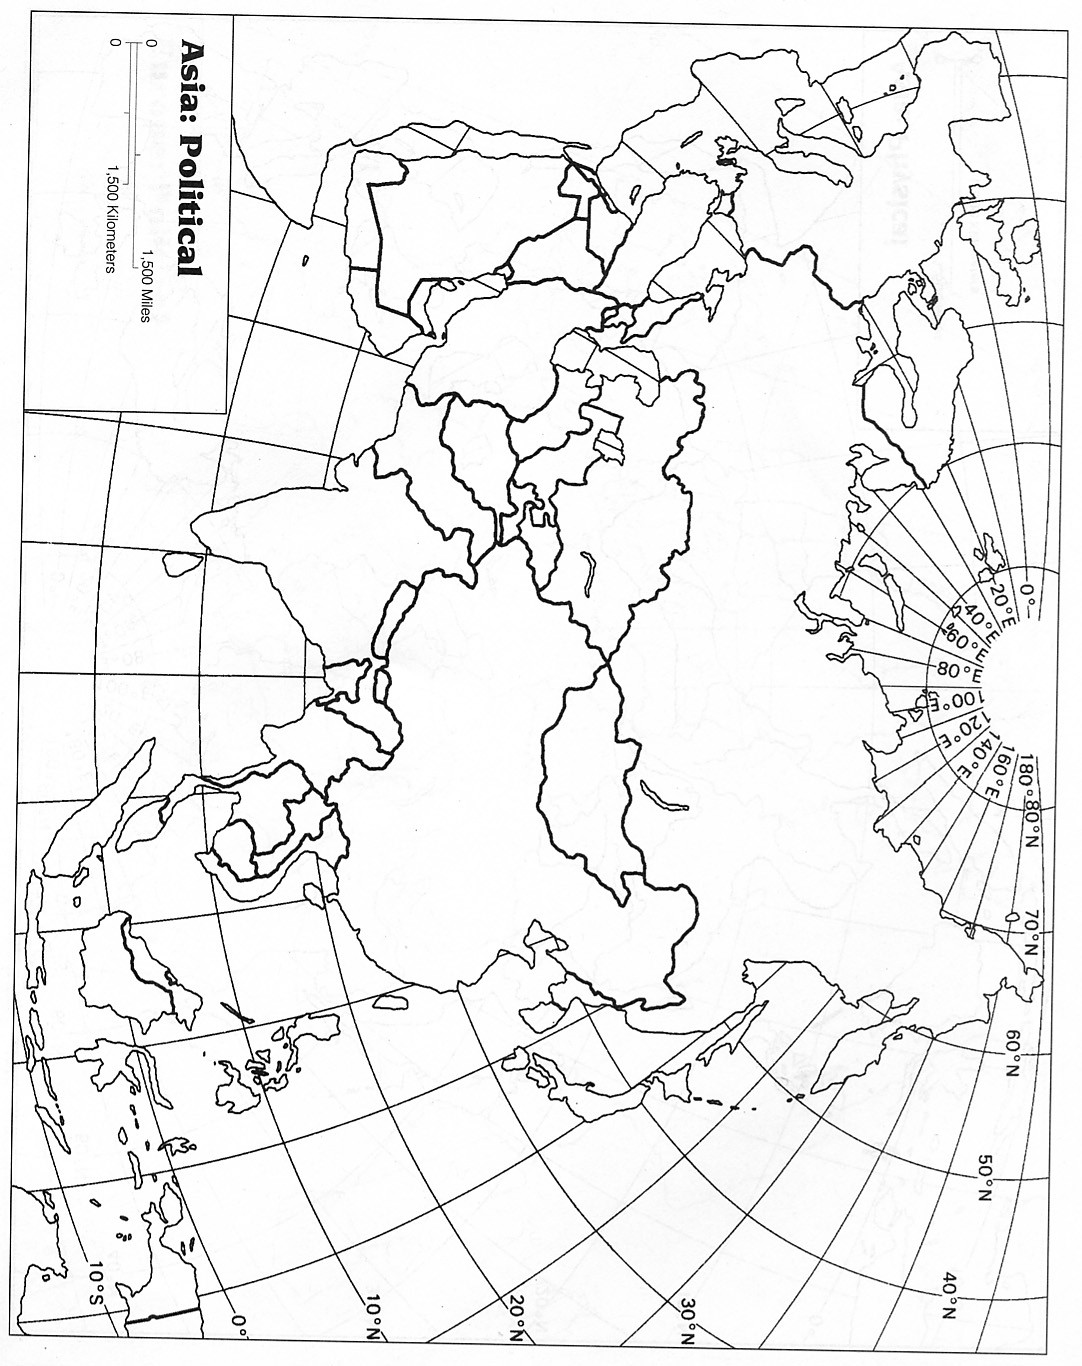 World history drawing at getdrawings free for personal use 1082x1366 world review blank political map best of world history i map page gumiabroncs